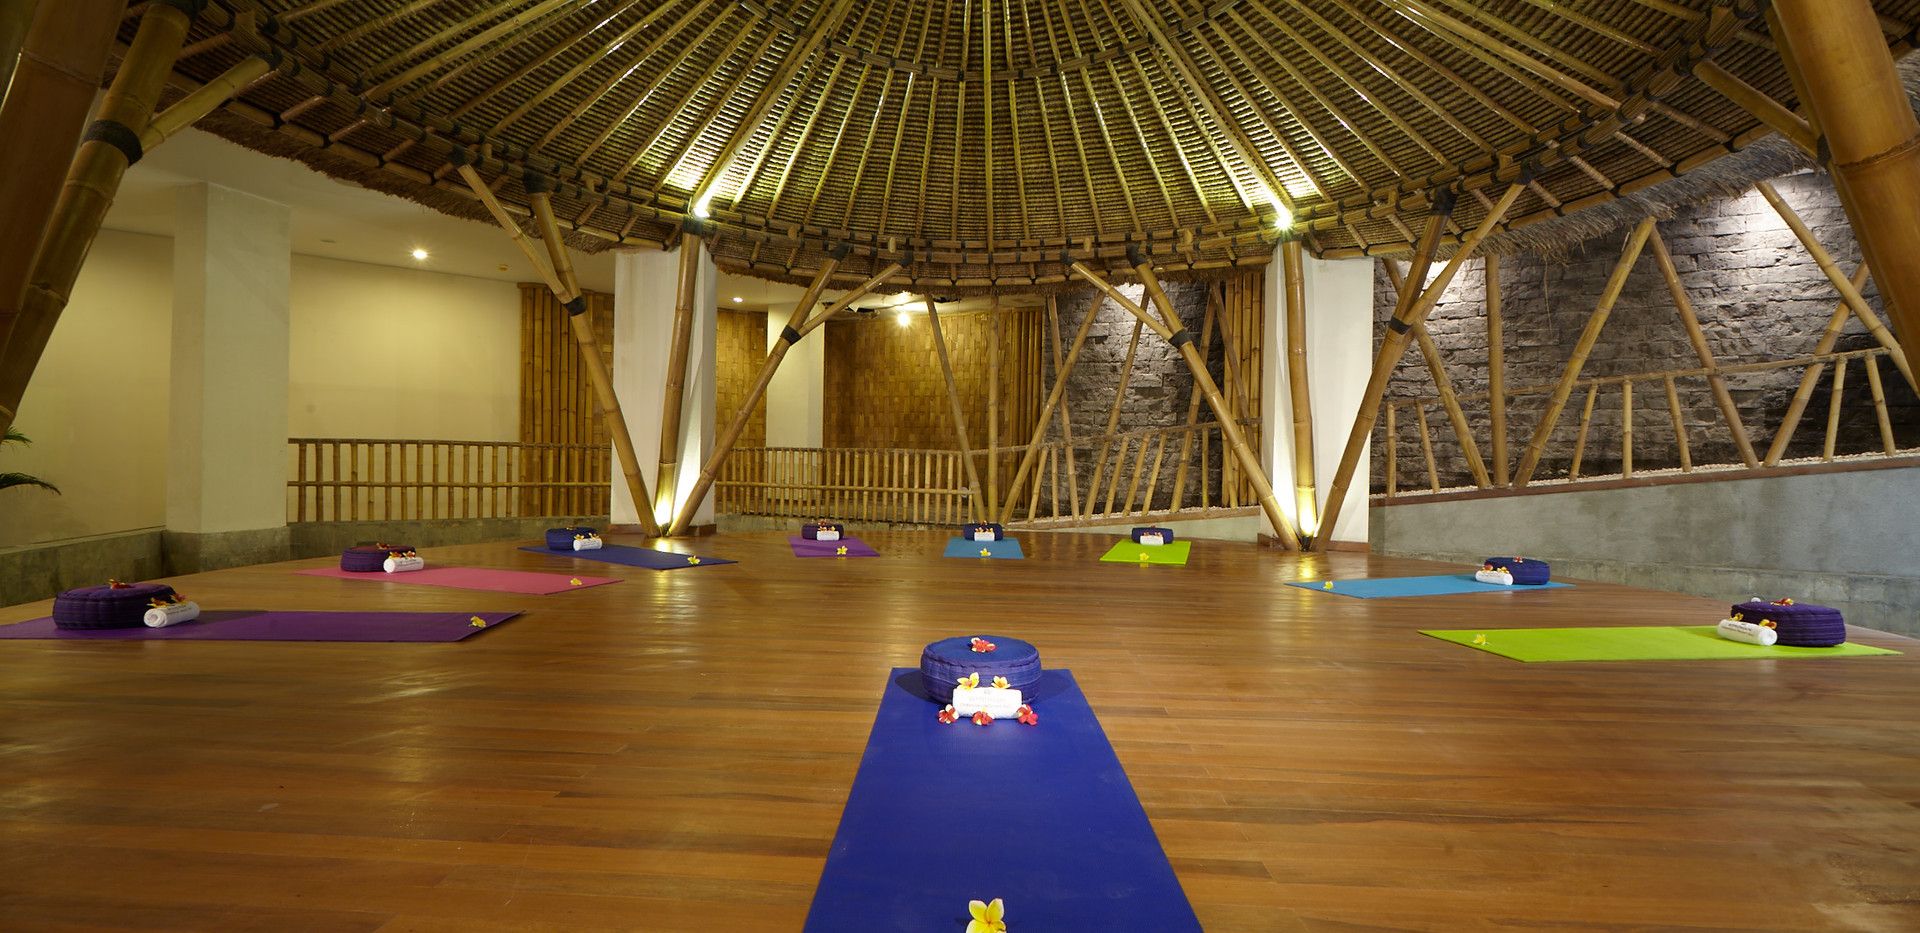 Yoga Studio - Wyndham Dreamland Resort Bali